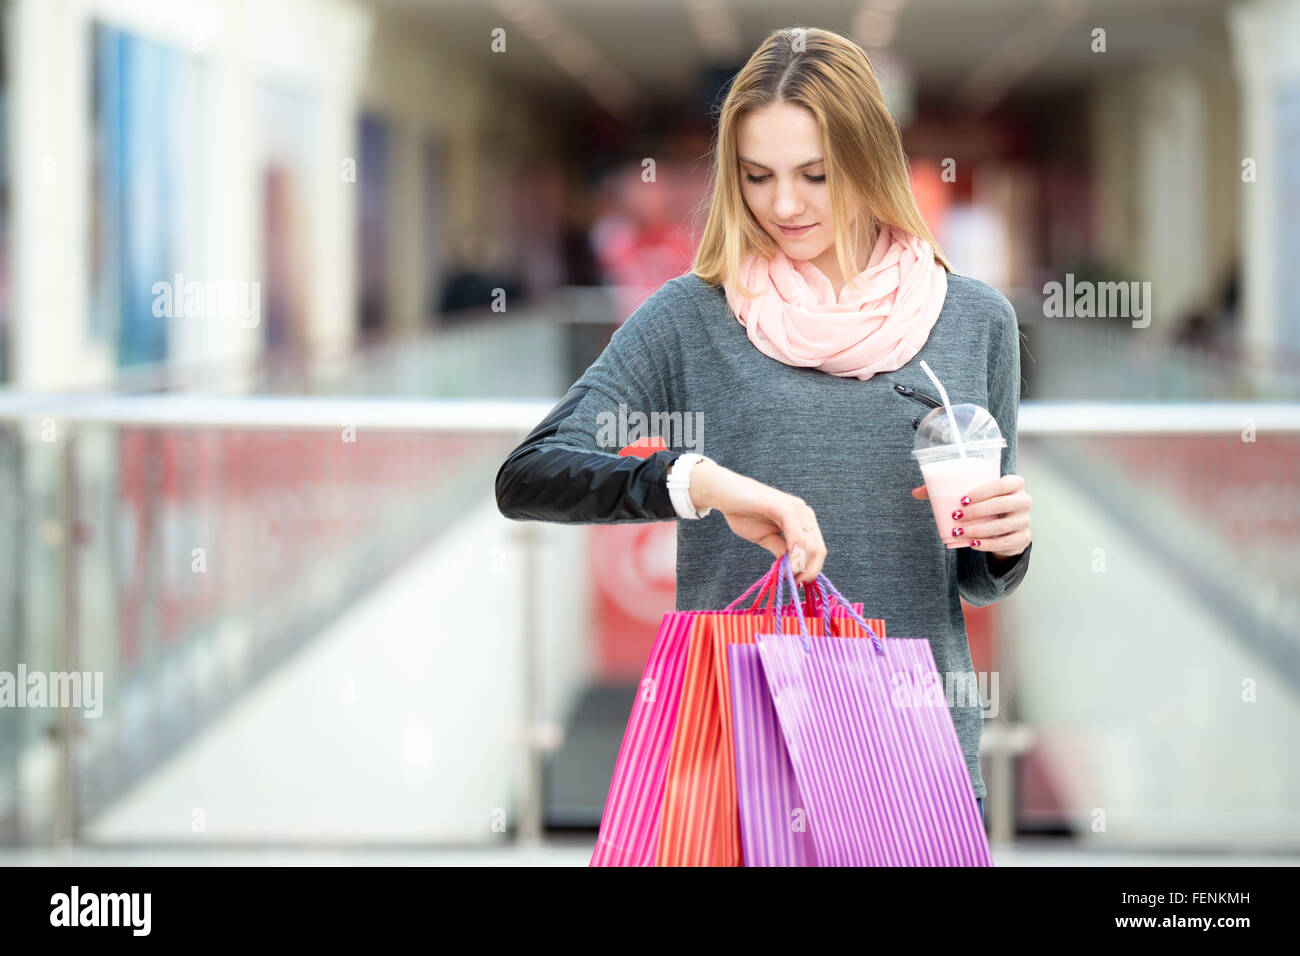 Young shopper woman looking at her watch while carrying paper bags with purchases and milkshake - Stock Image